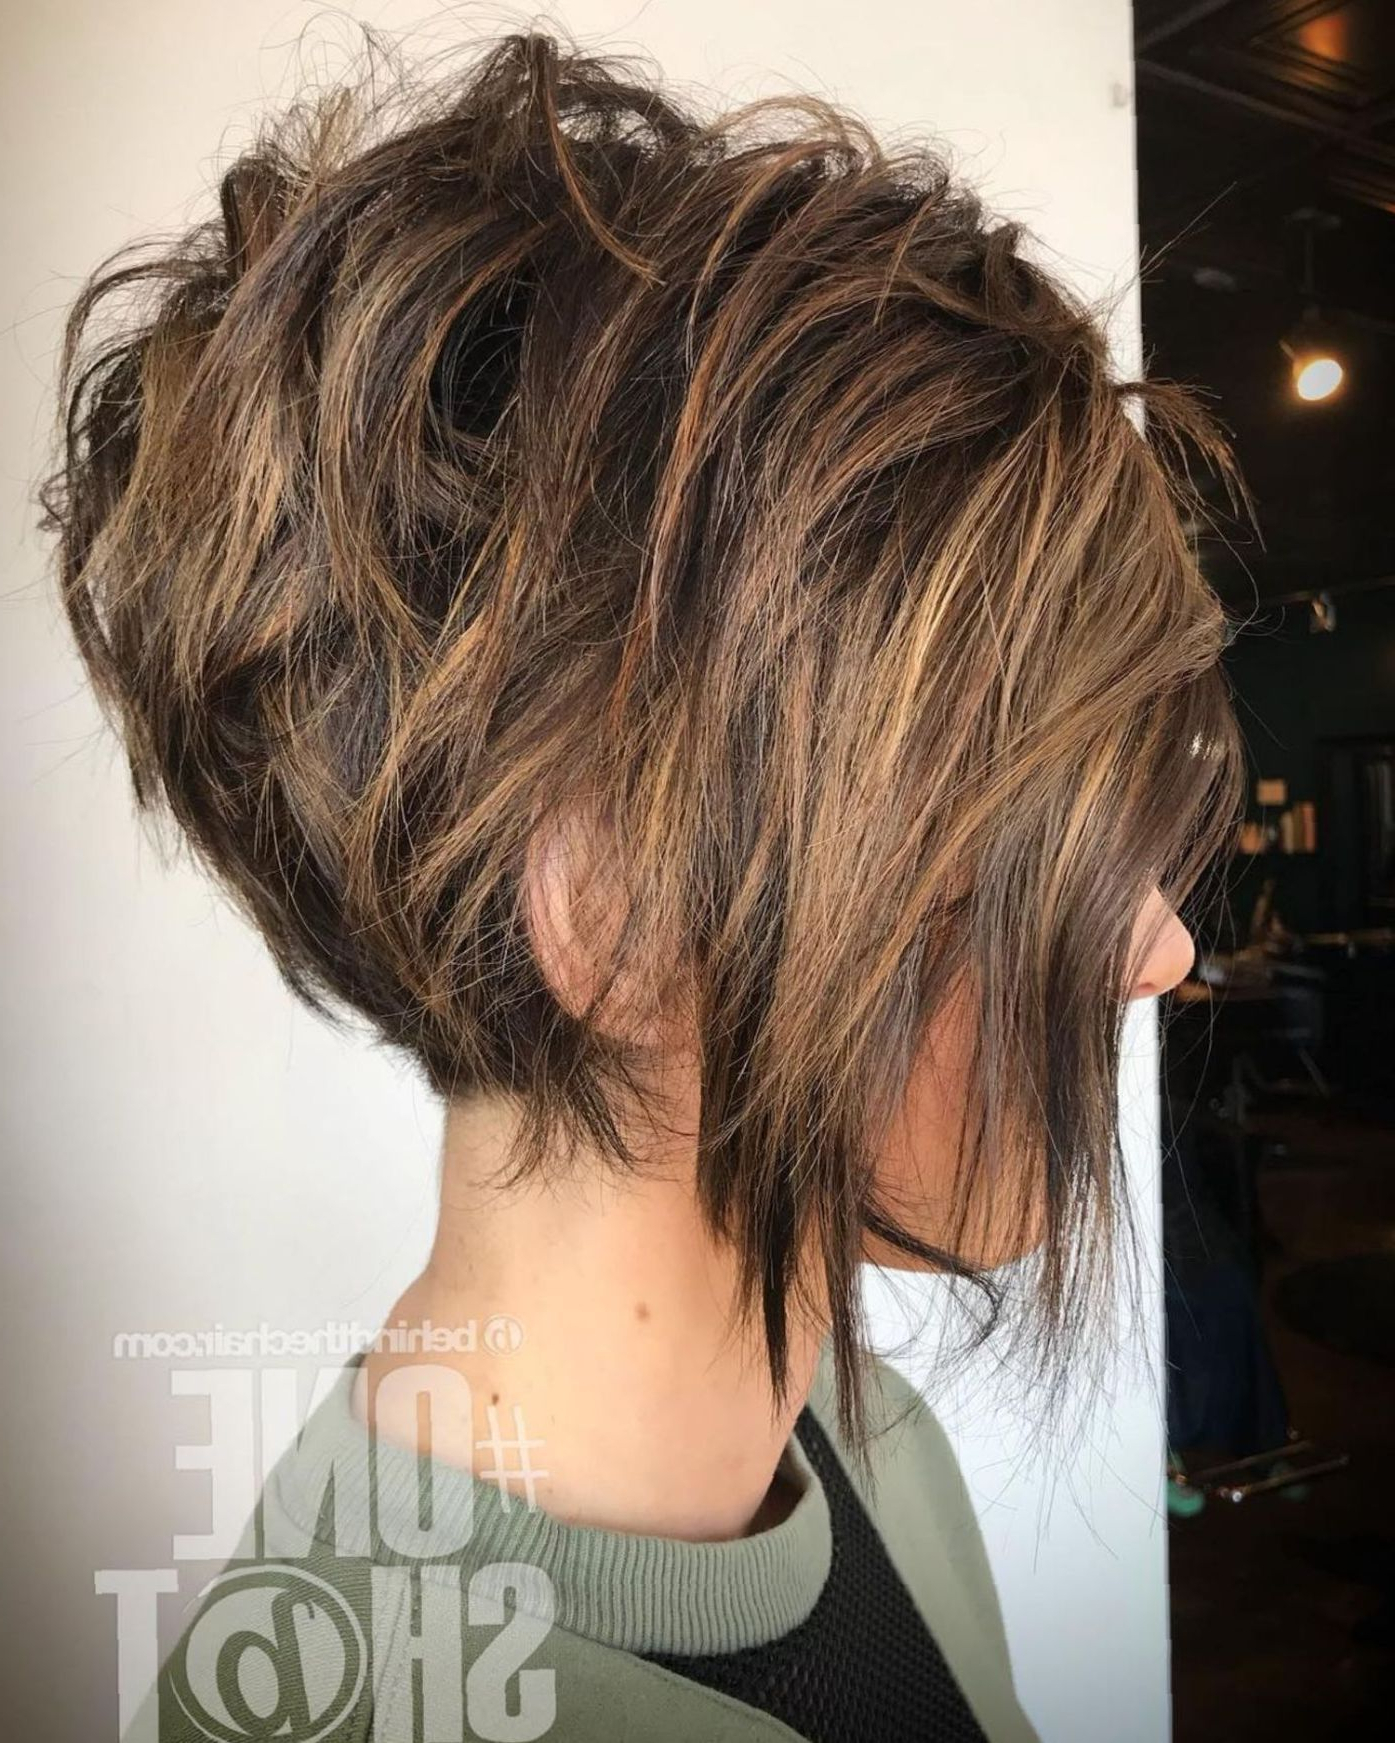 60 Short Shag Hairstyles That You Simply Can't Miss | Hair Within Short Shaggy Brunette Bob Hairstyles (View 7 of 20)